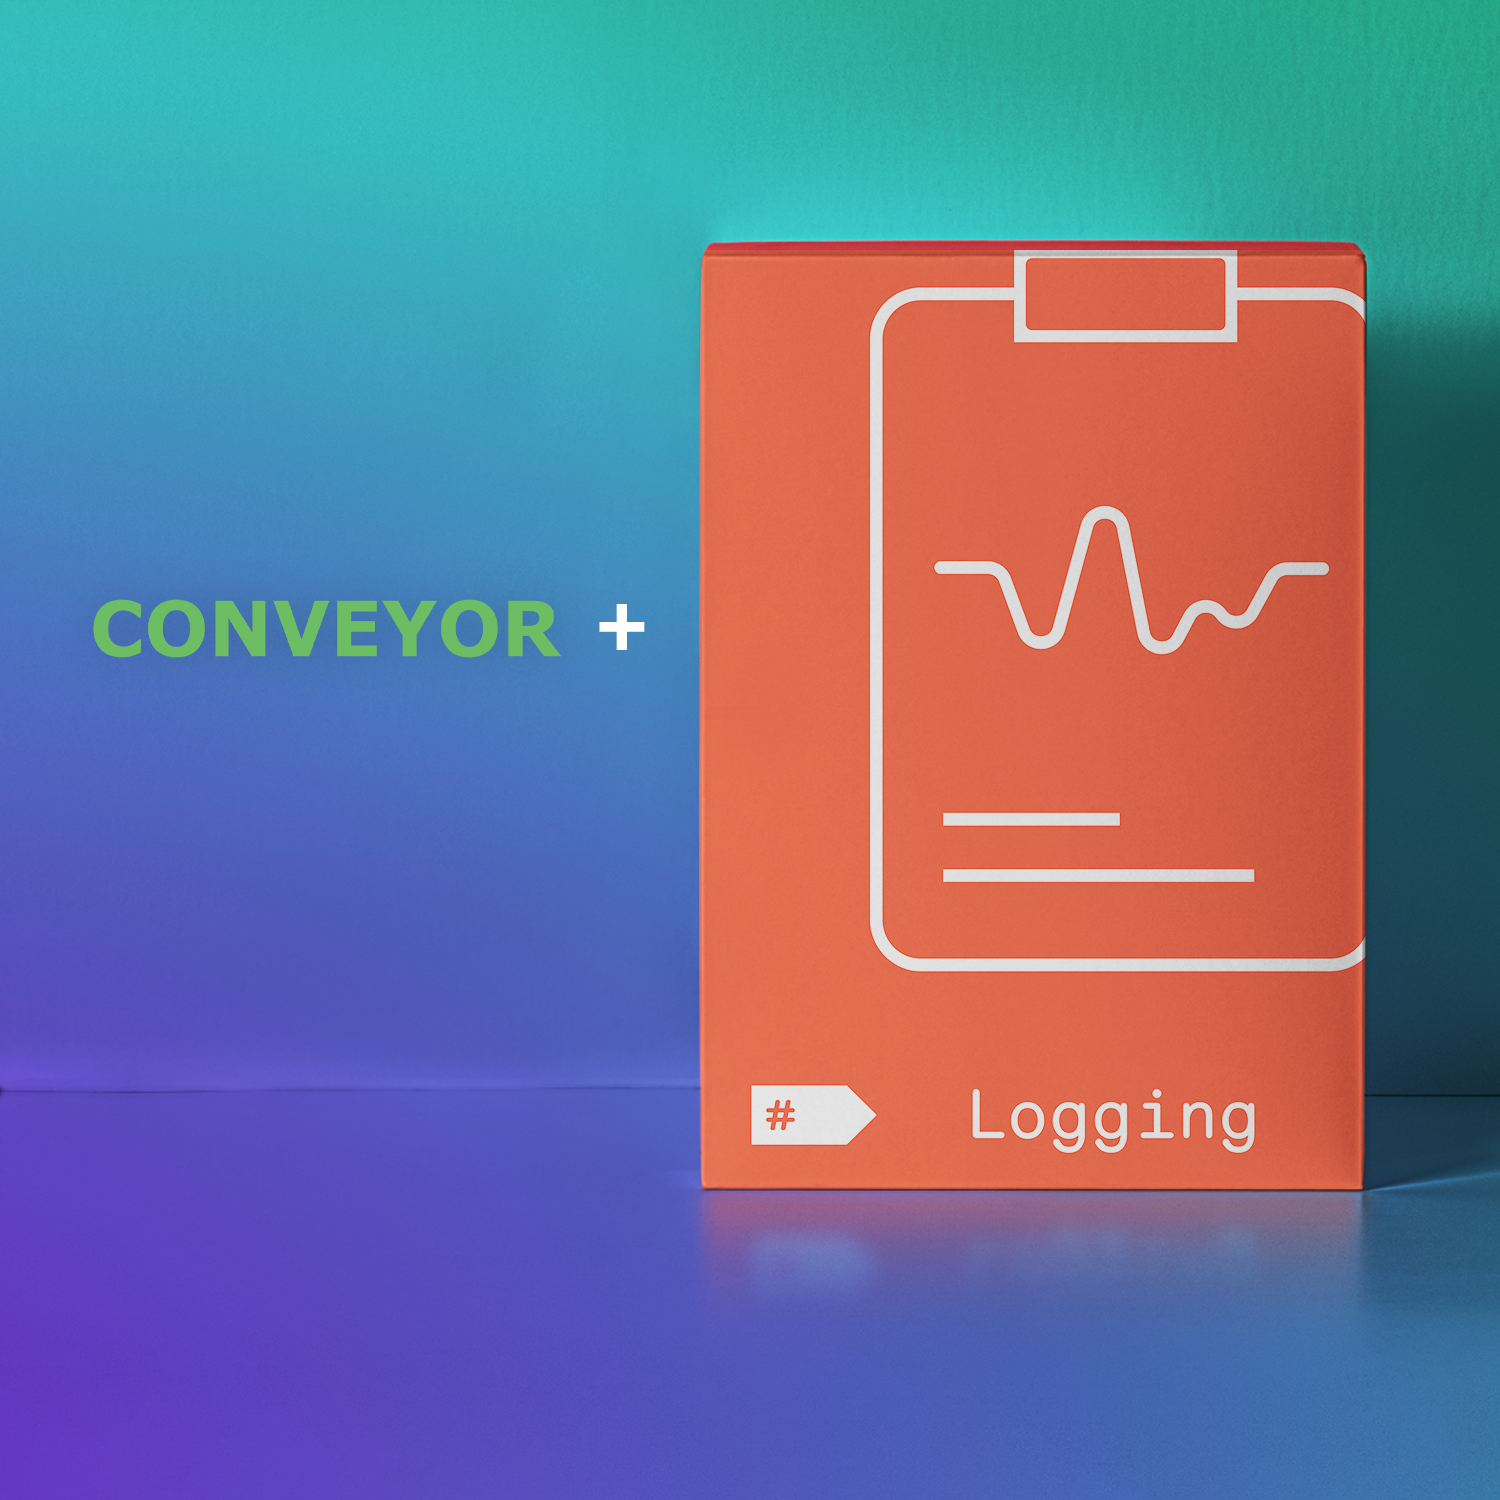 Debugging from devices with Conveyor and PostSharp Logging